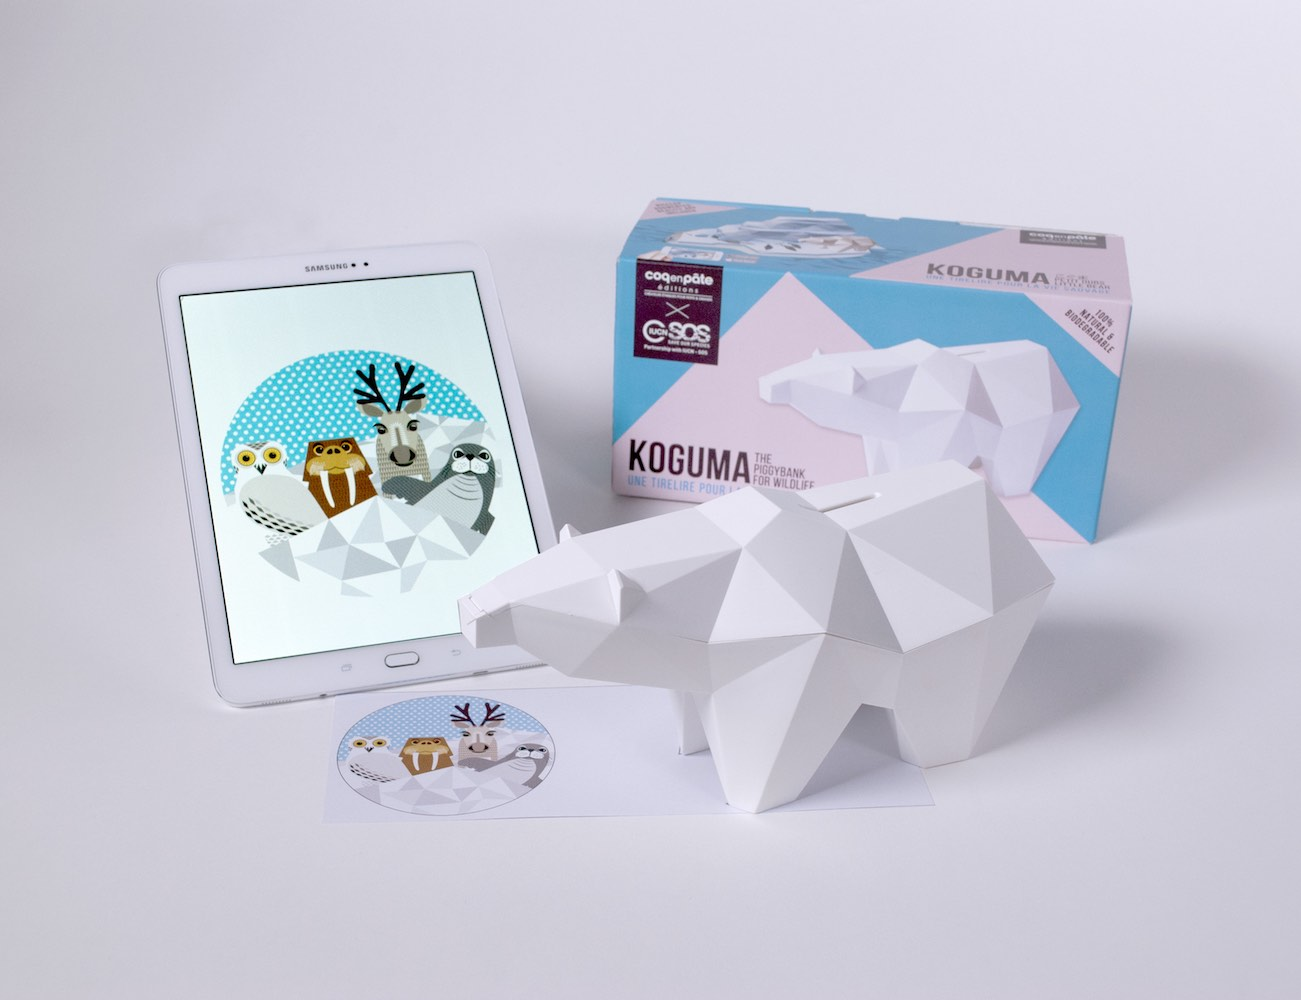 Koguma – The Piggybank For Wildlife